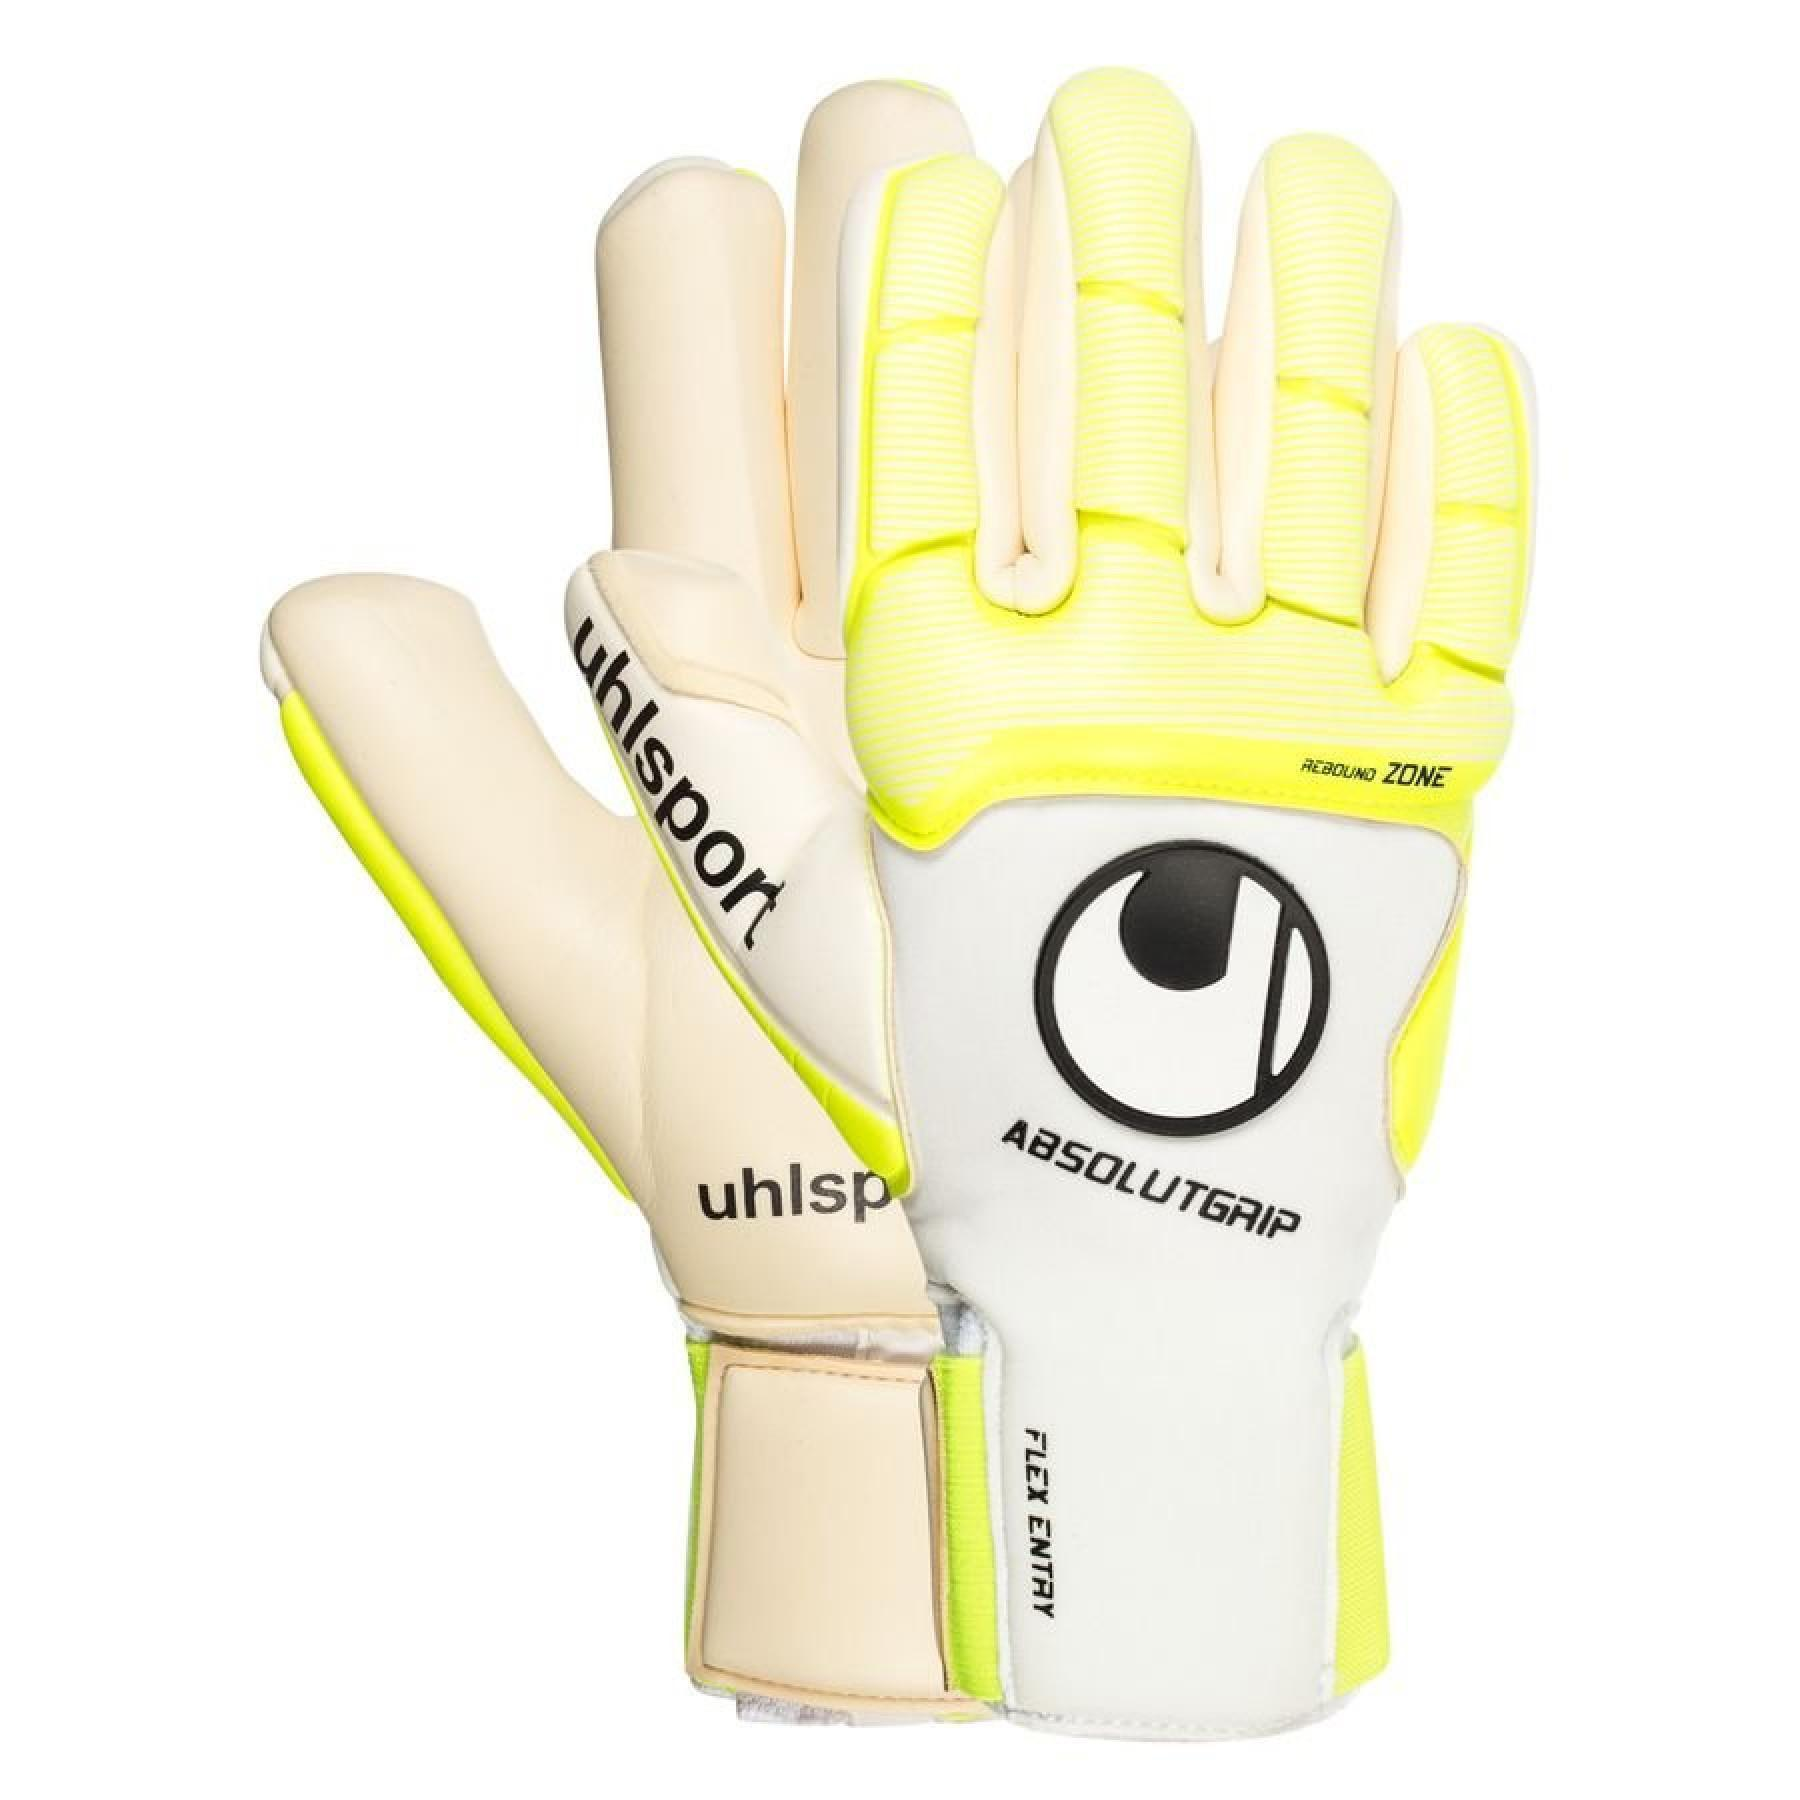 Uhlsport Pure Alliance AbsolutGrip Finger Surround Handschuhe